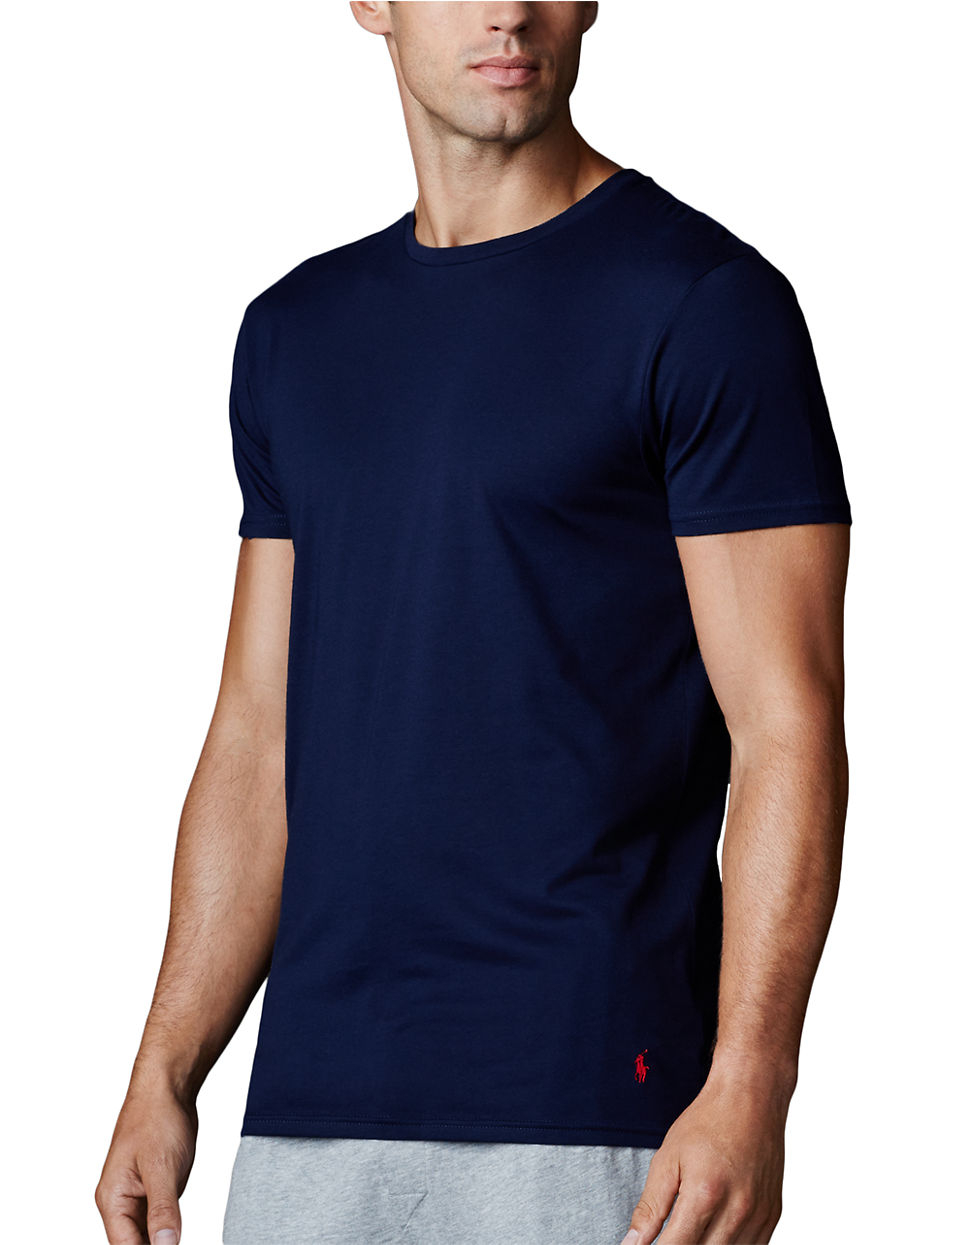 Shop for great deals on Tj Maxx at Vinted. Save up to 80% on Tj Maxx and other pre-loved clothing in T-Shirts to complete your style.